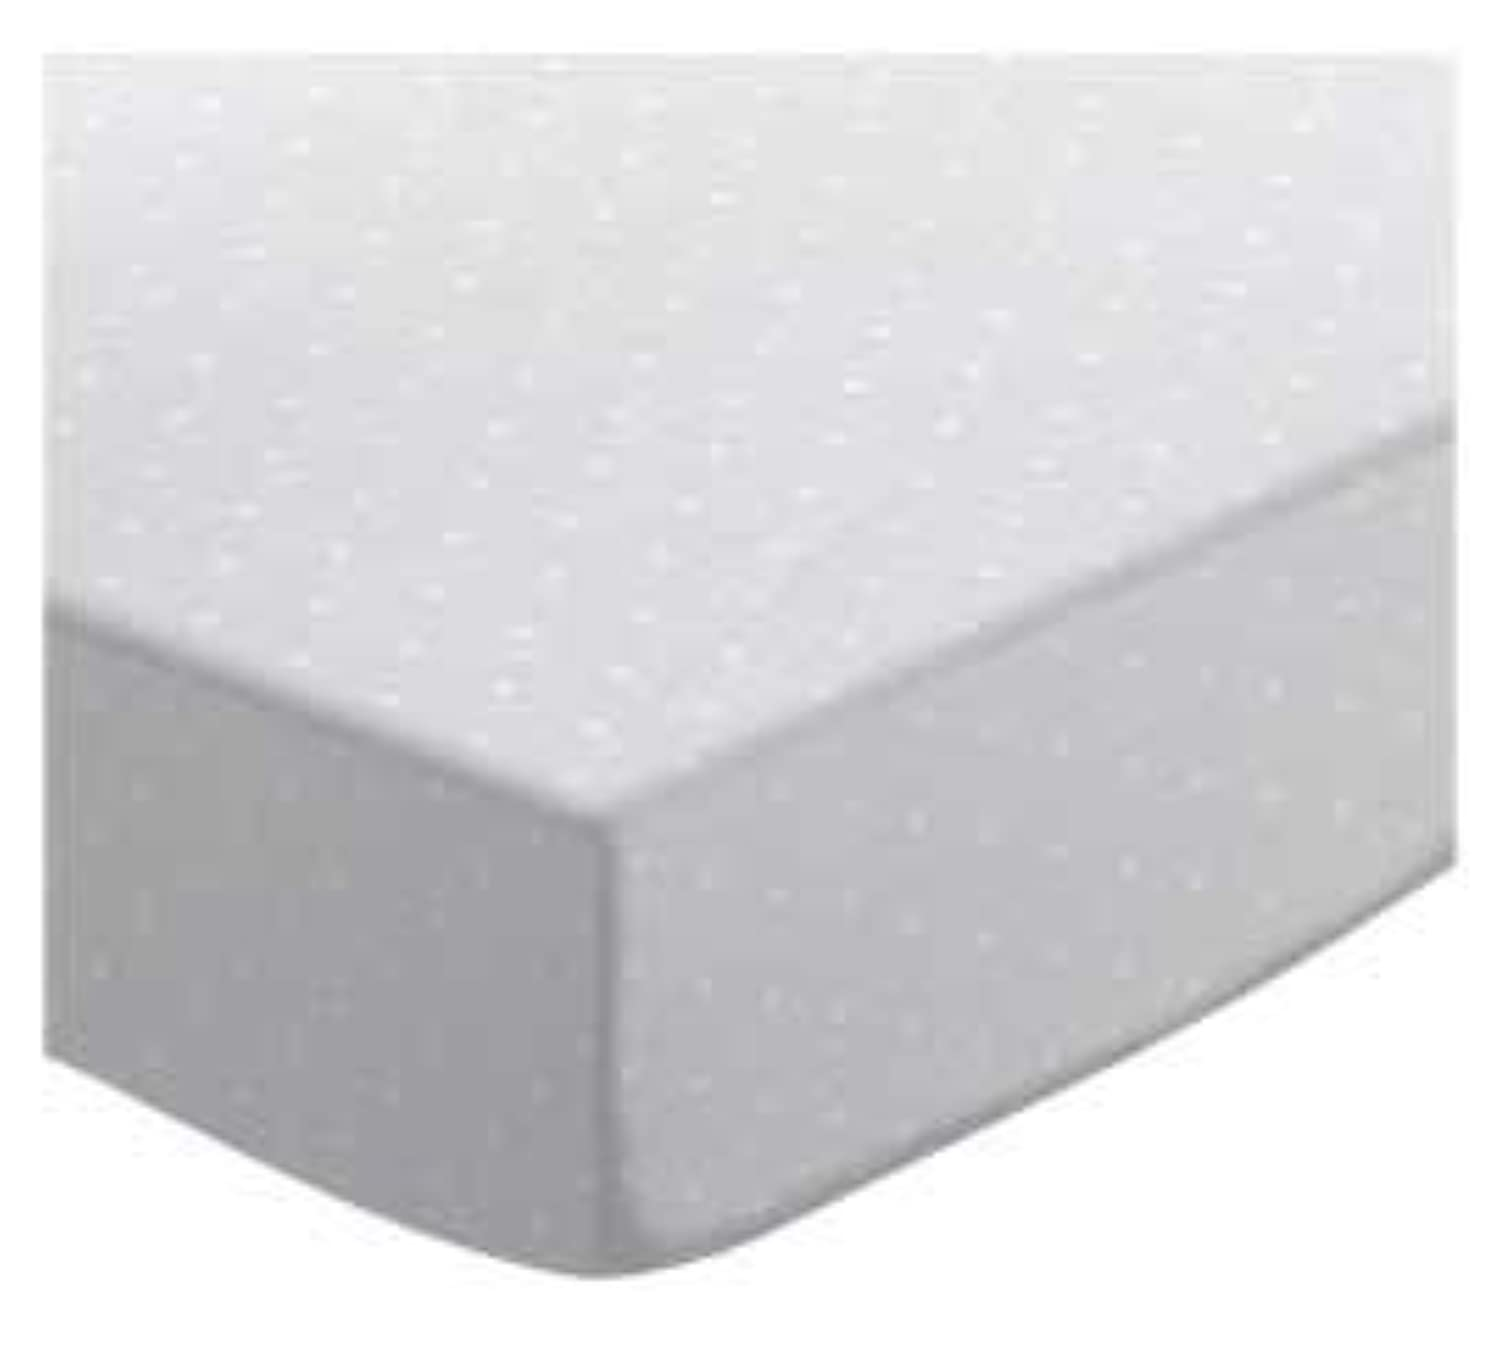 SheetWorld Fitted Crib / Toddler Sheet - White Swiss Dot Jersey Knit - Made In USA by sheetworld